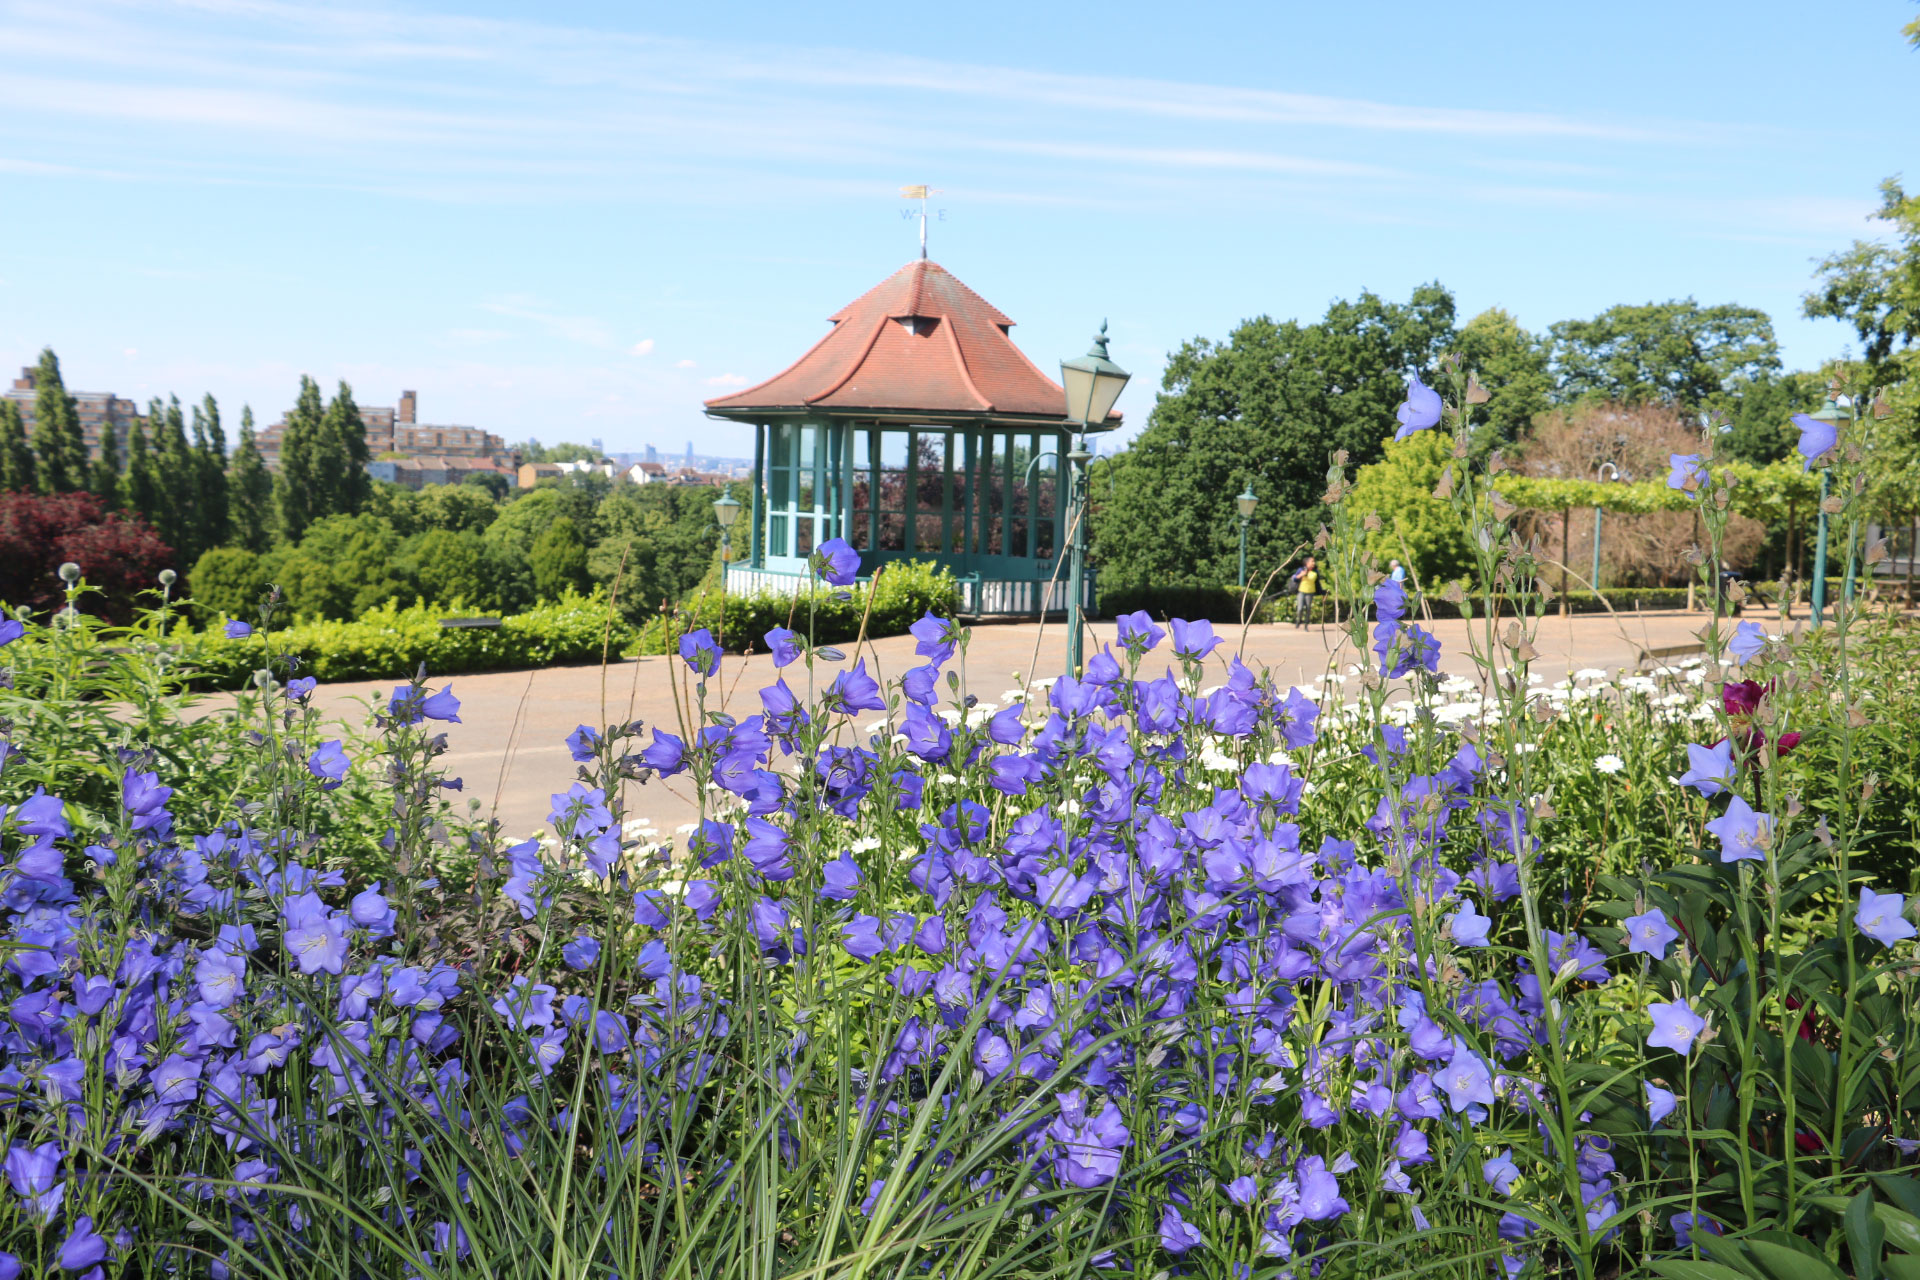 Small purple flowers are in the foreground growing in a raised flower bed, with a terrace and bandstand behind, and trees framing the distance.